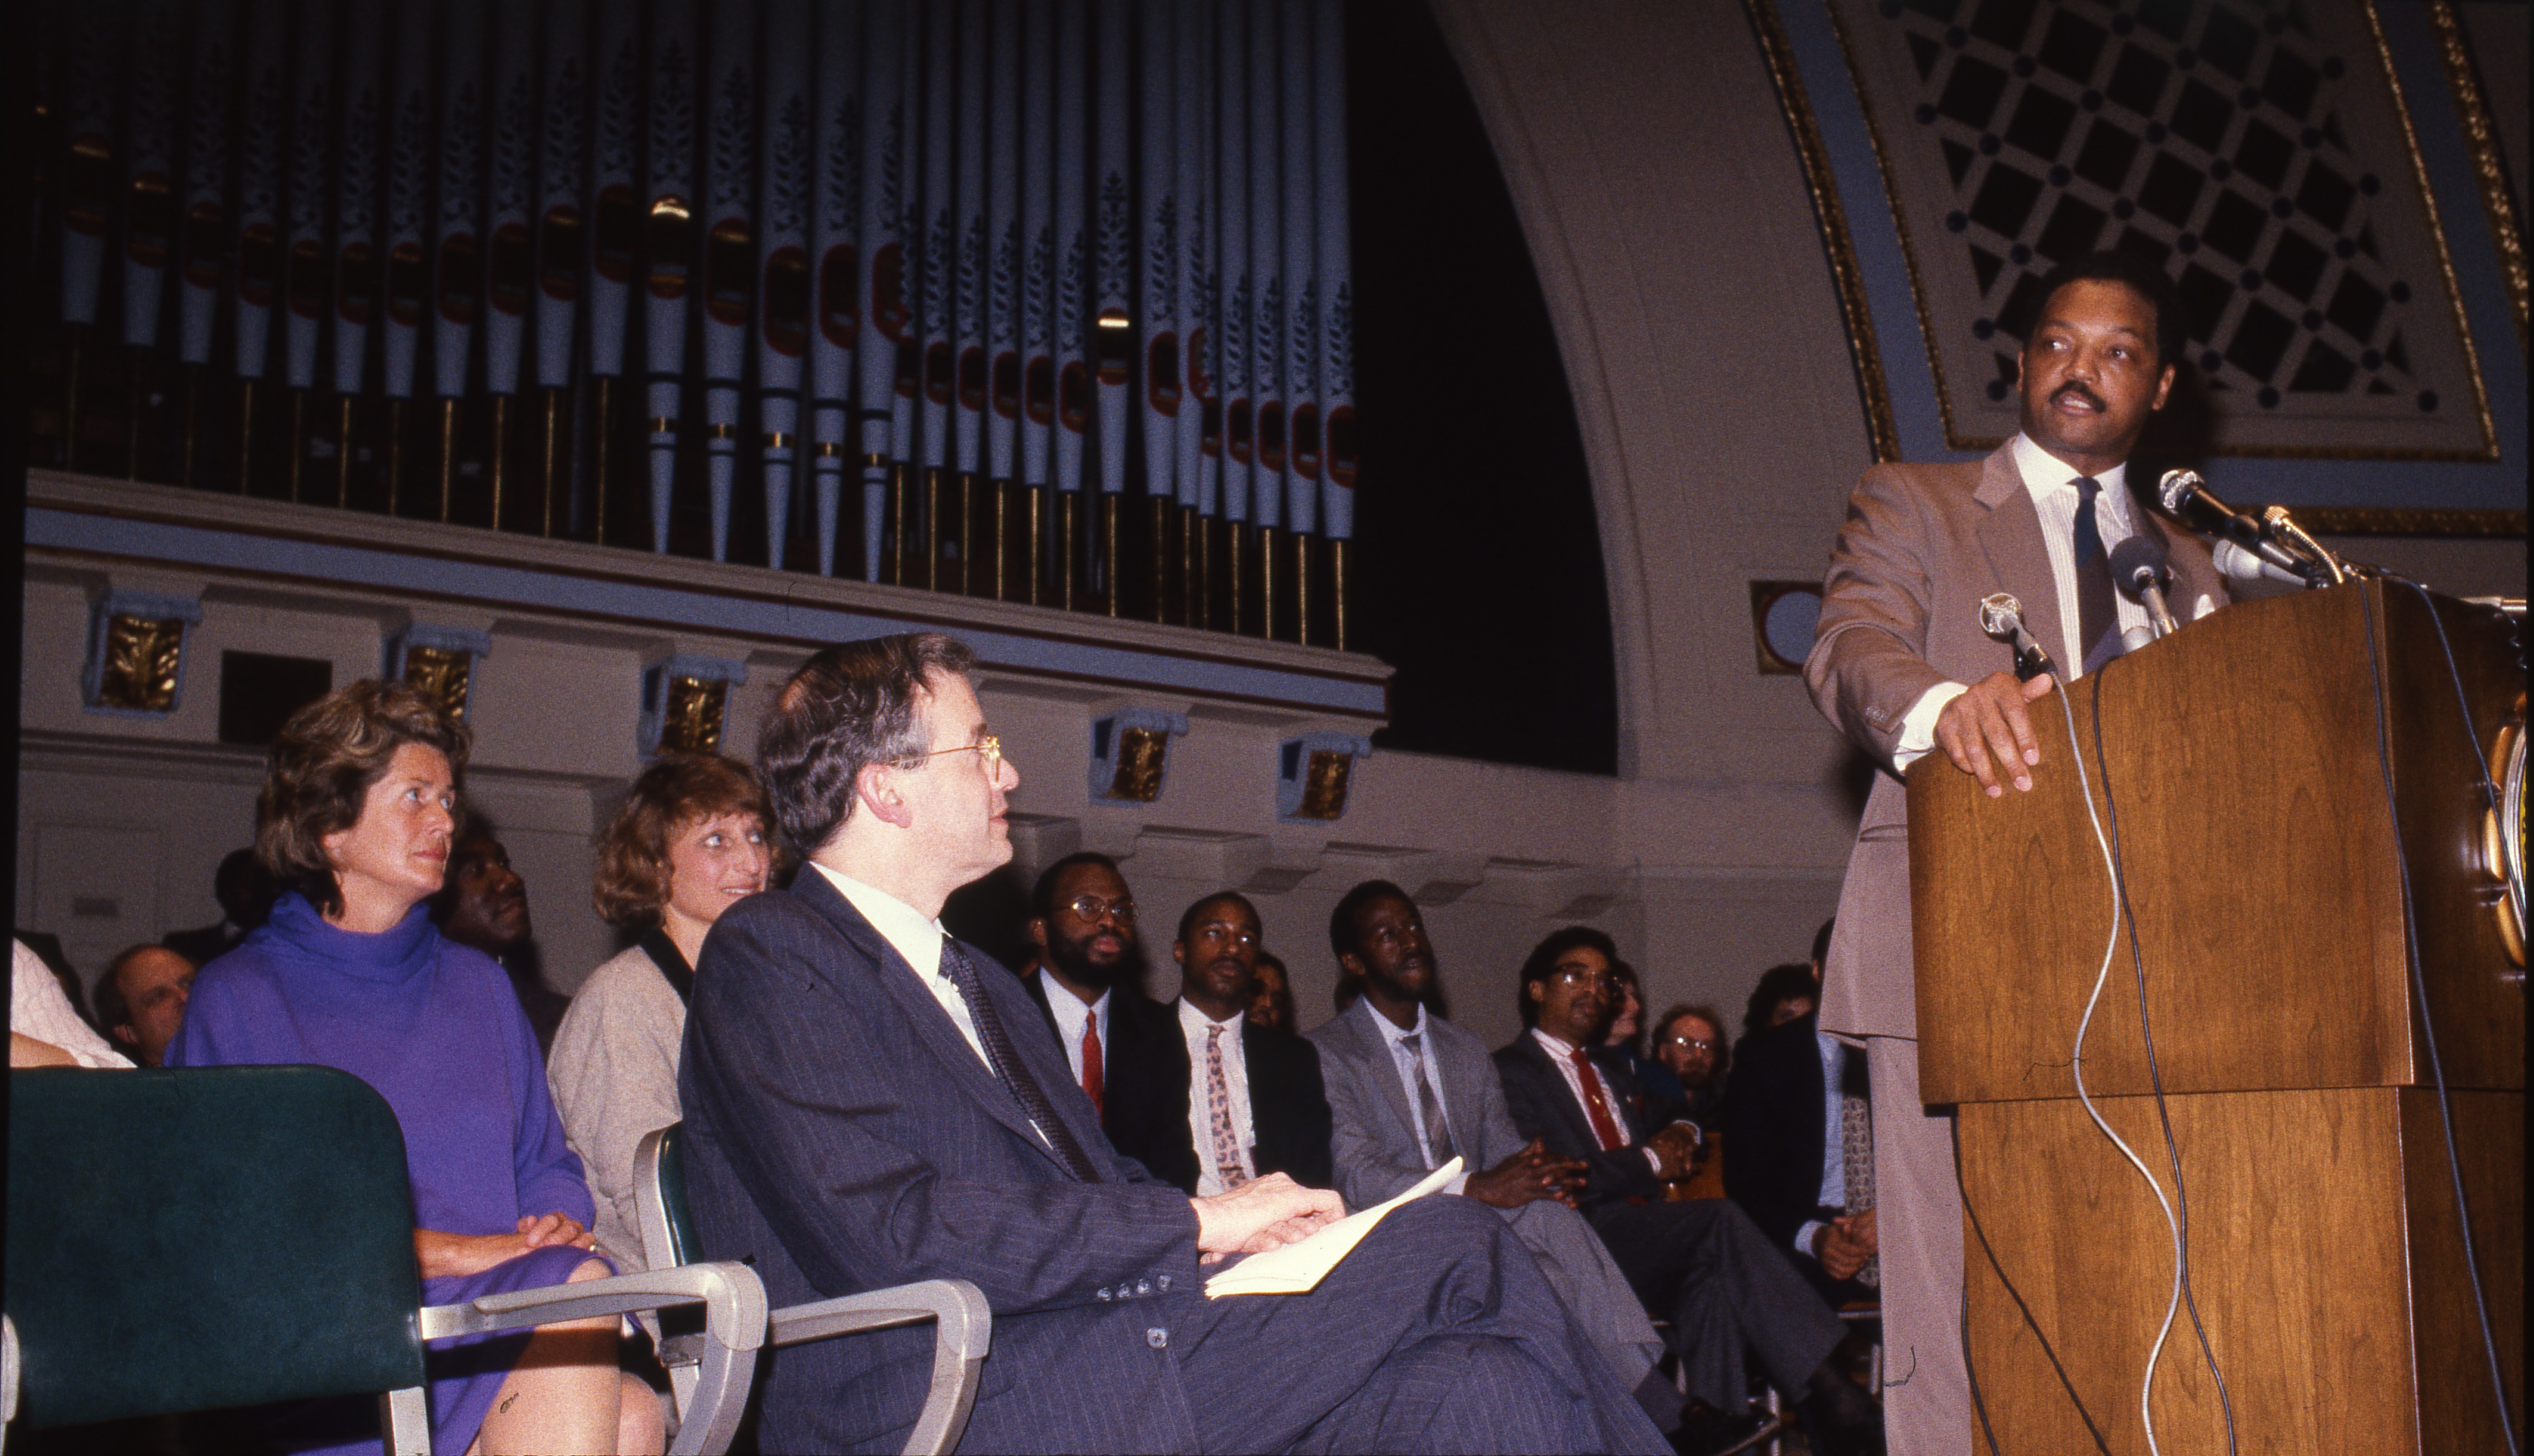 Image from Rev. Jesse Jackson Speaks At Hill Auditorium, March 24, 1987